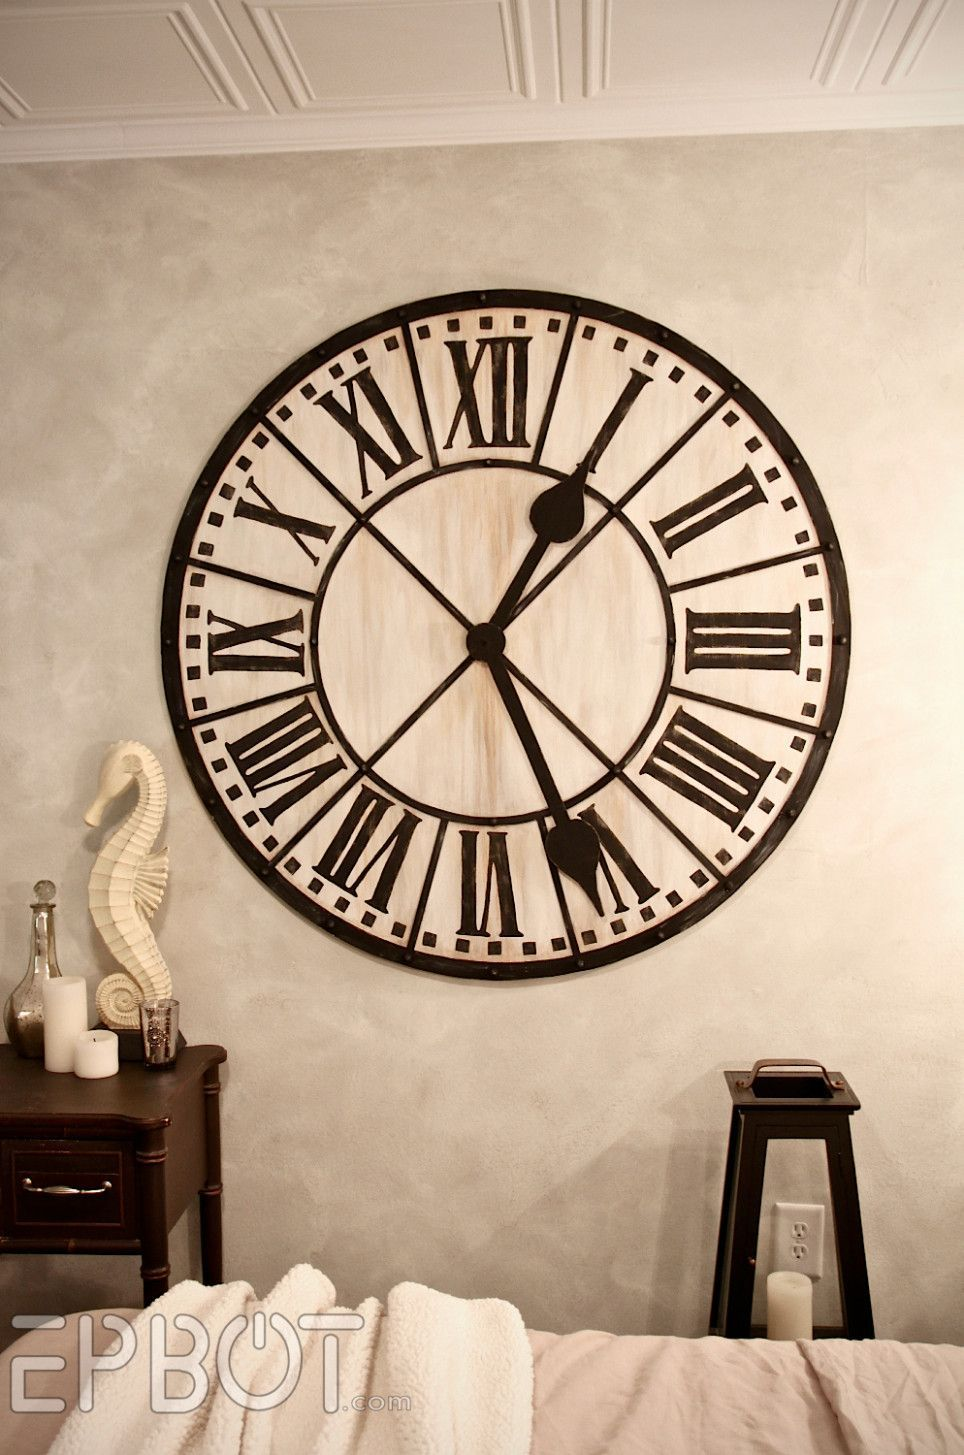 Outstanding Extra Large Decorative Wall Clocks E Ercis Com Decoration In 2020 Diy Clock Wall Large Wall Clock Decor Clock Wall Decor